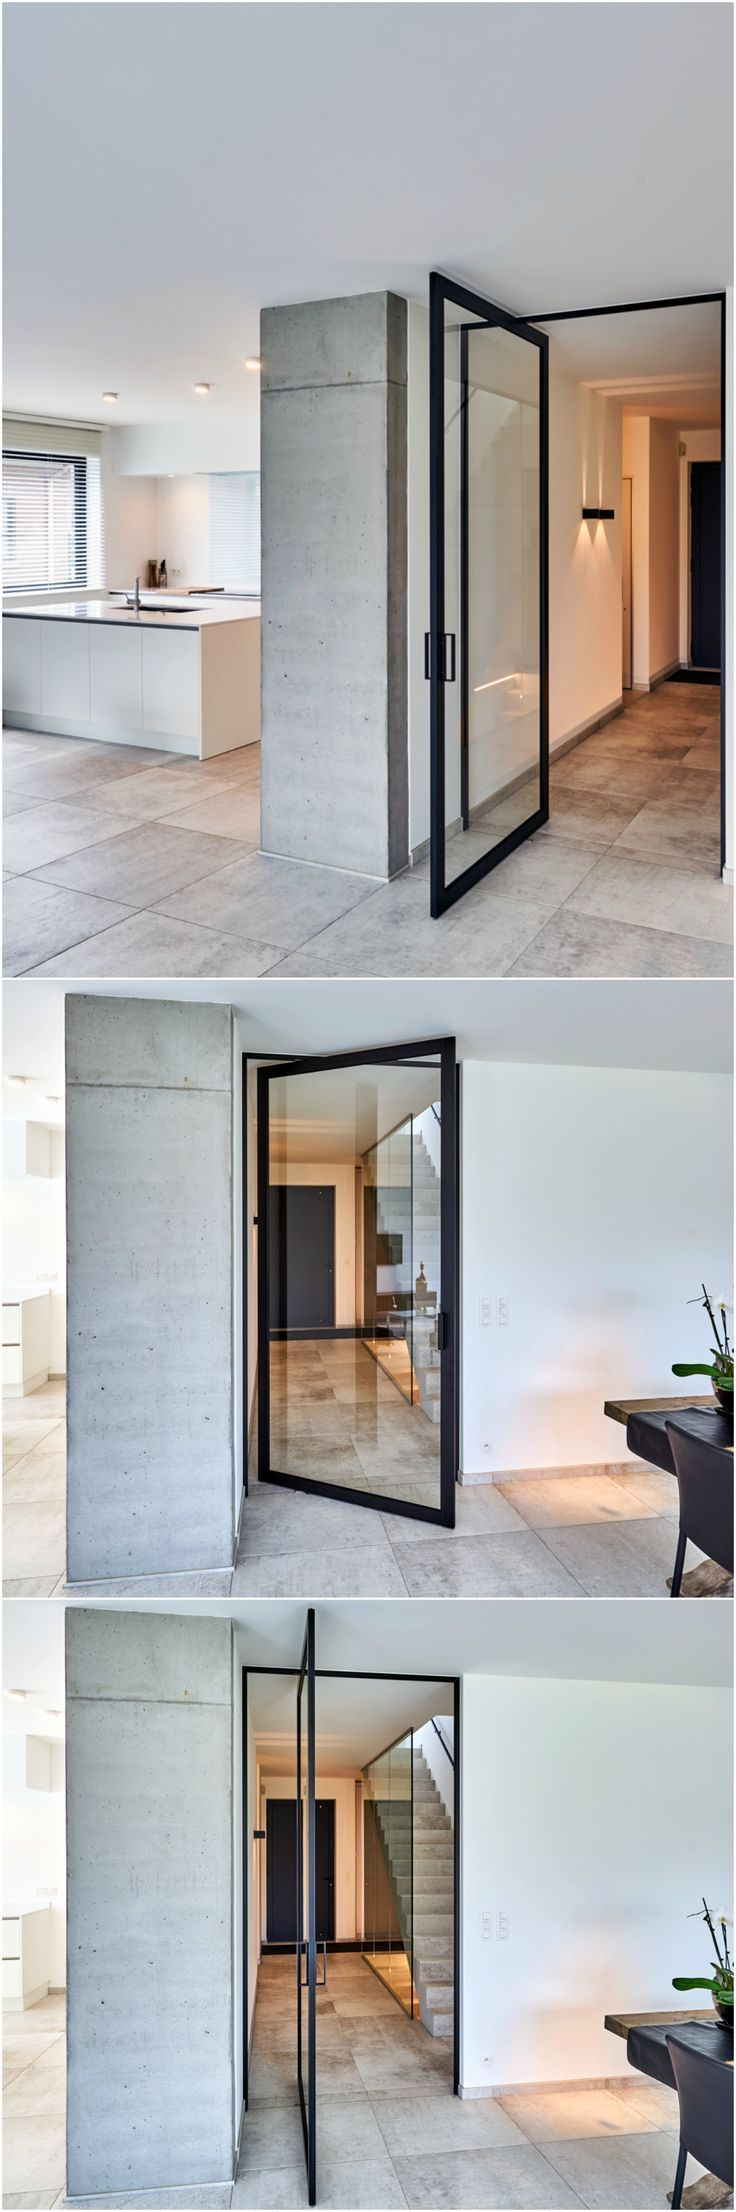 pivot hinges for interior doors. glass pivot door with offset axis hinge without built-in floor fixtures. the unique system is integrated in black anodized frame and hinges for interior doors